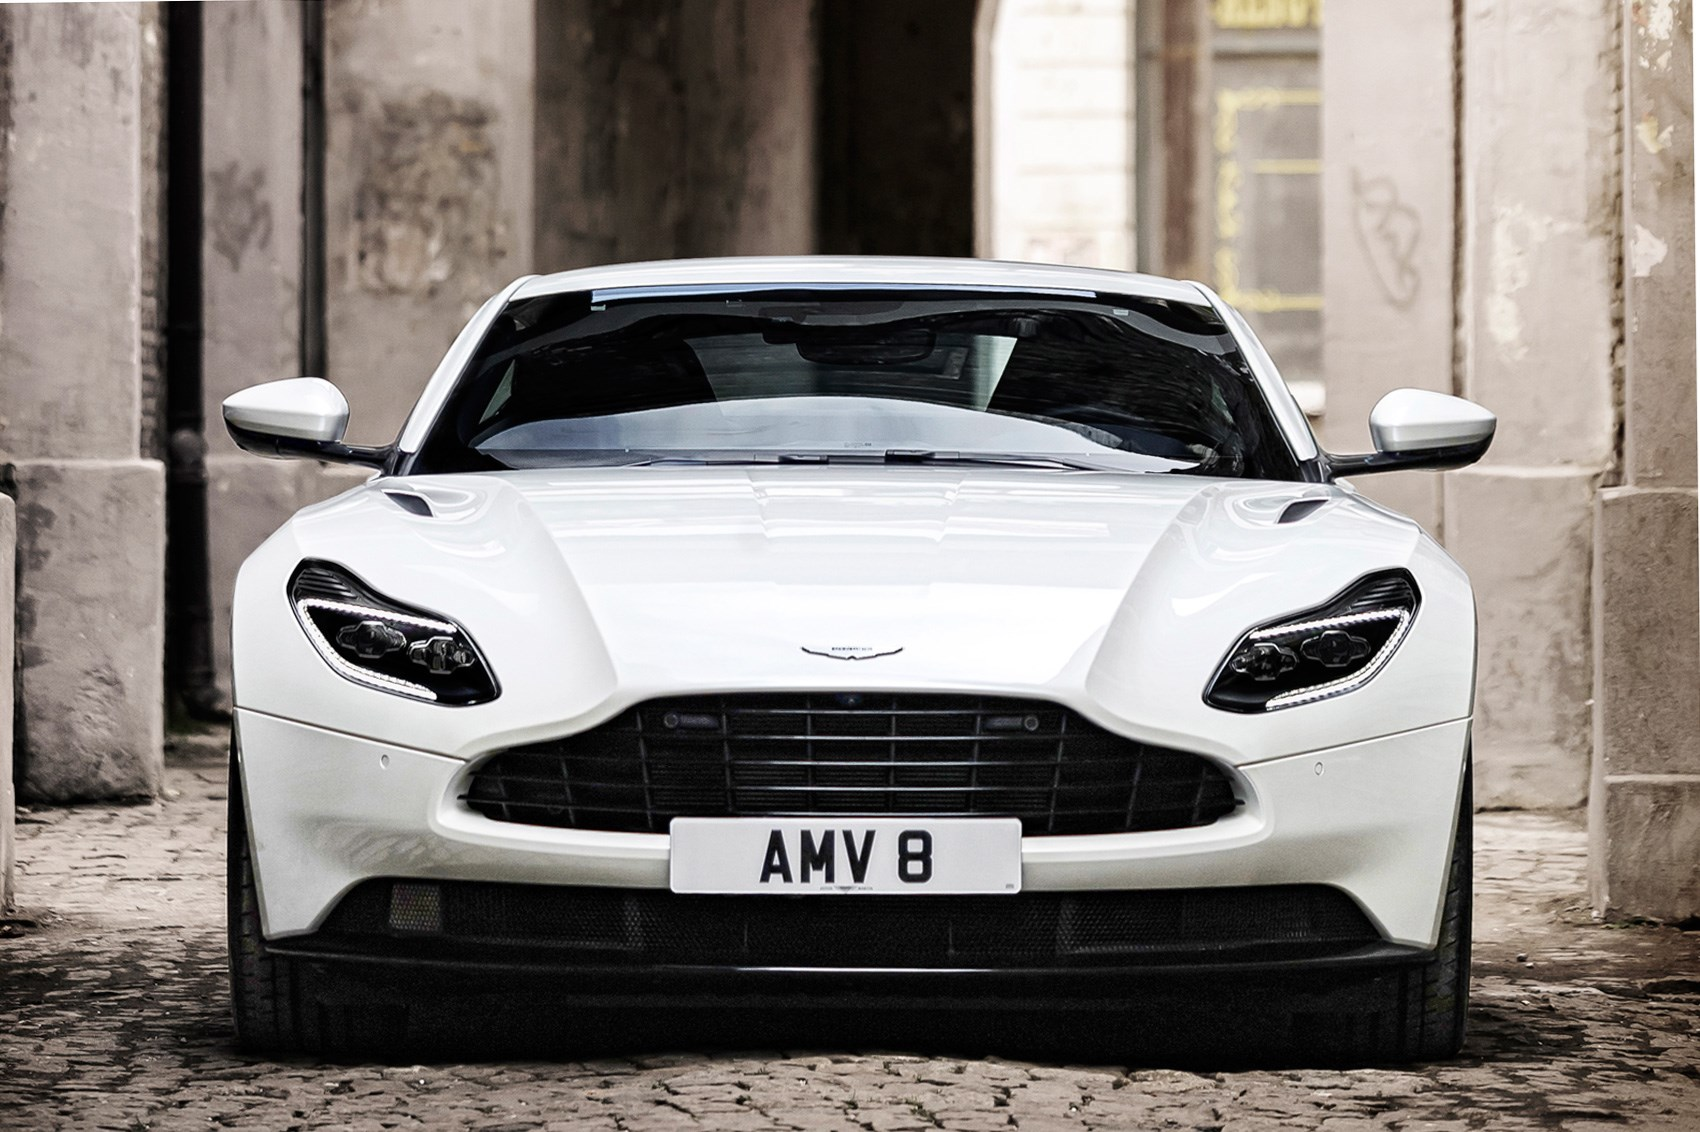 aston martin db11 gets a v8 mate: 4.0 amg engine joins range | car